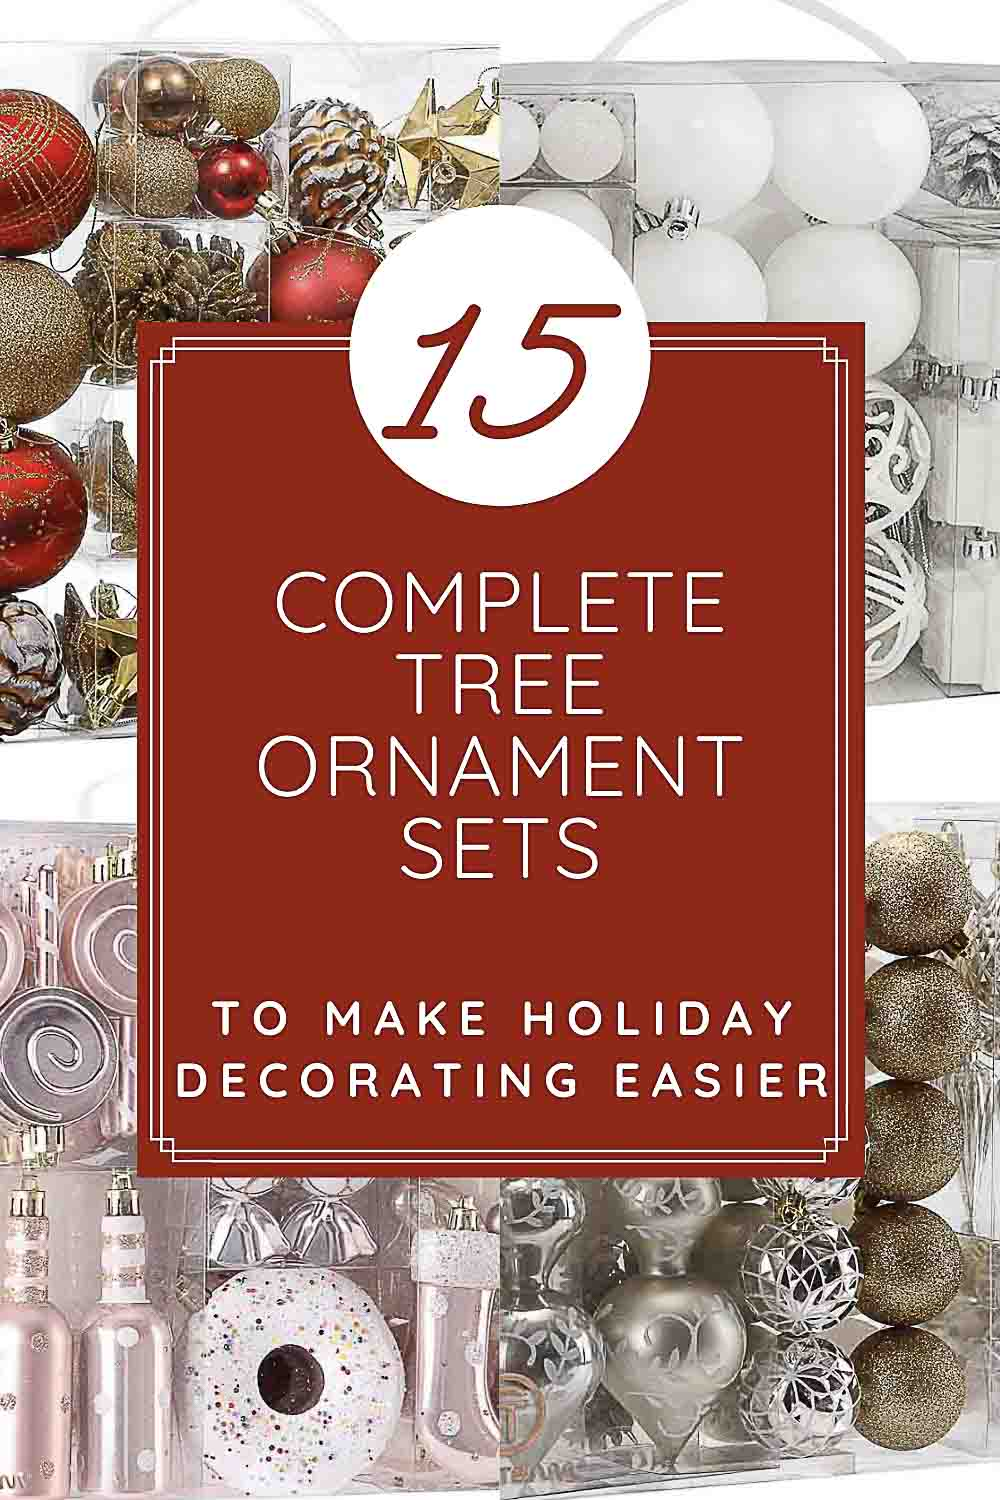 15 Decorating Kits for Christmas Trees to Make Your Holiday Easier